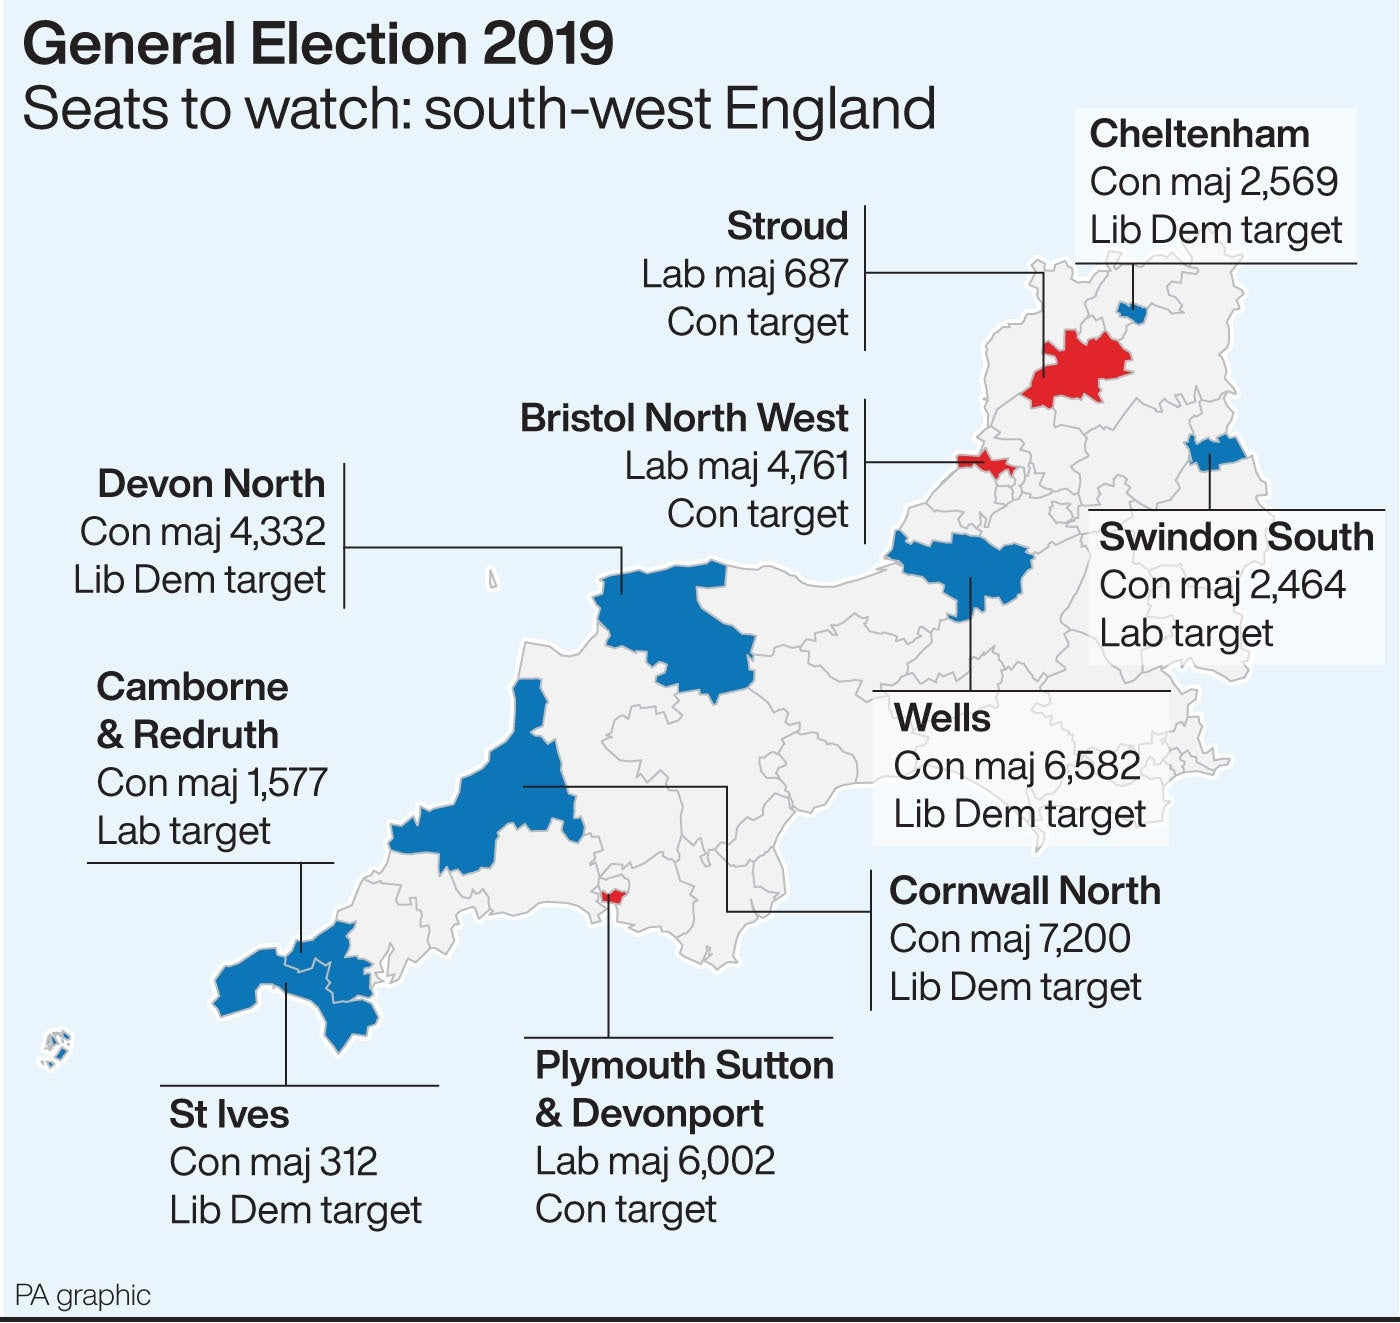 Seats to watch in south-west England